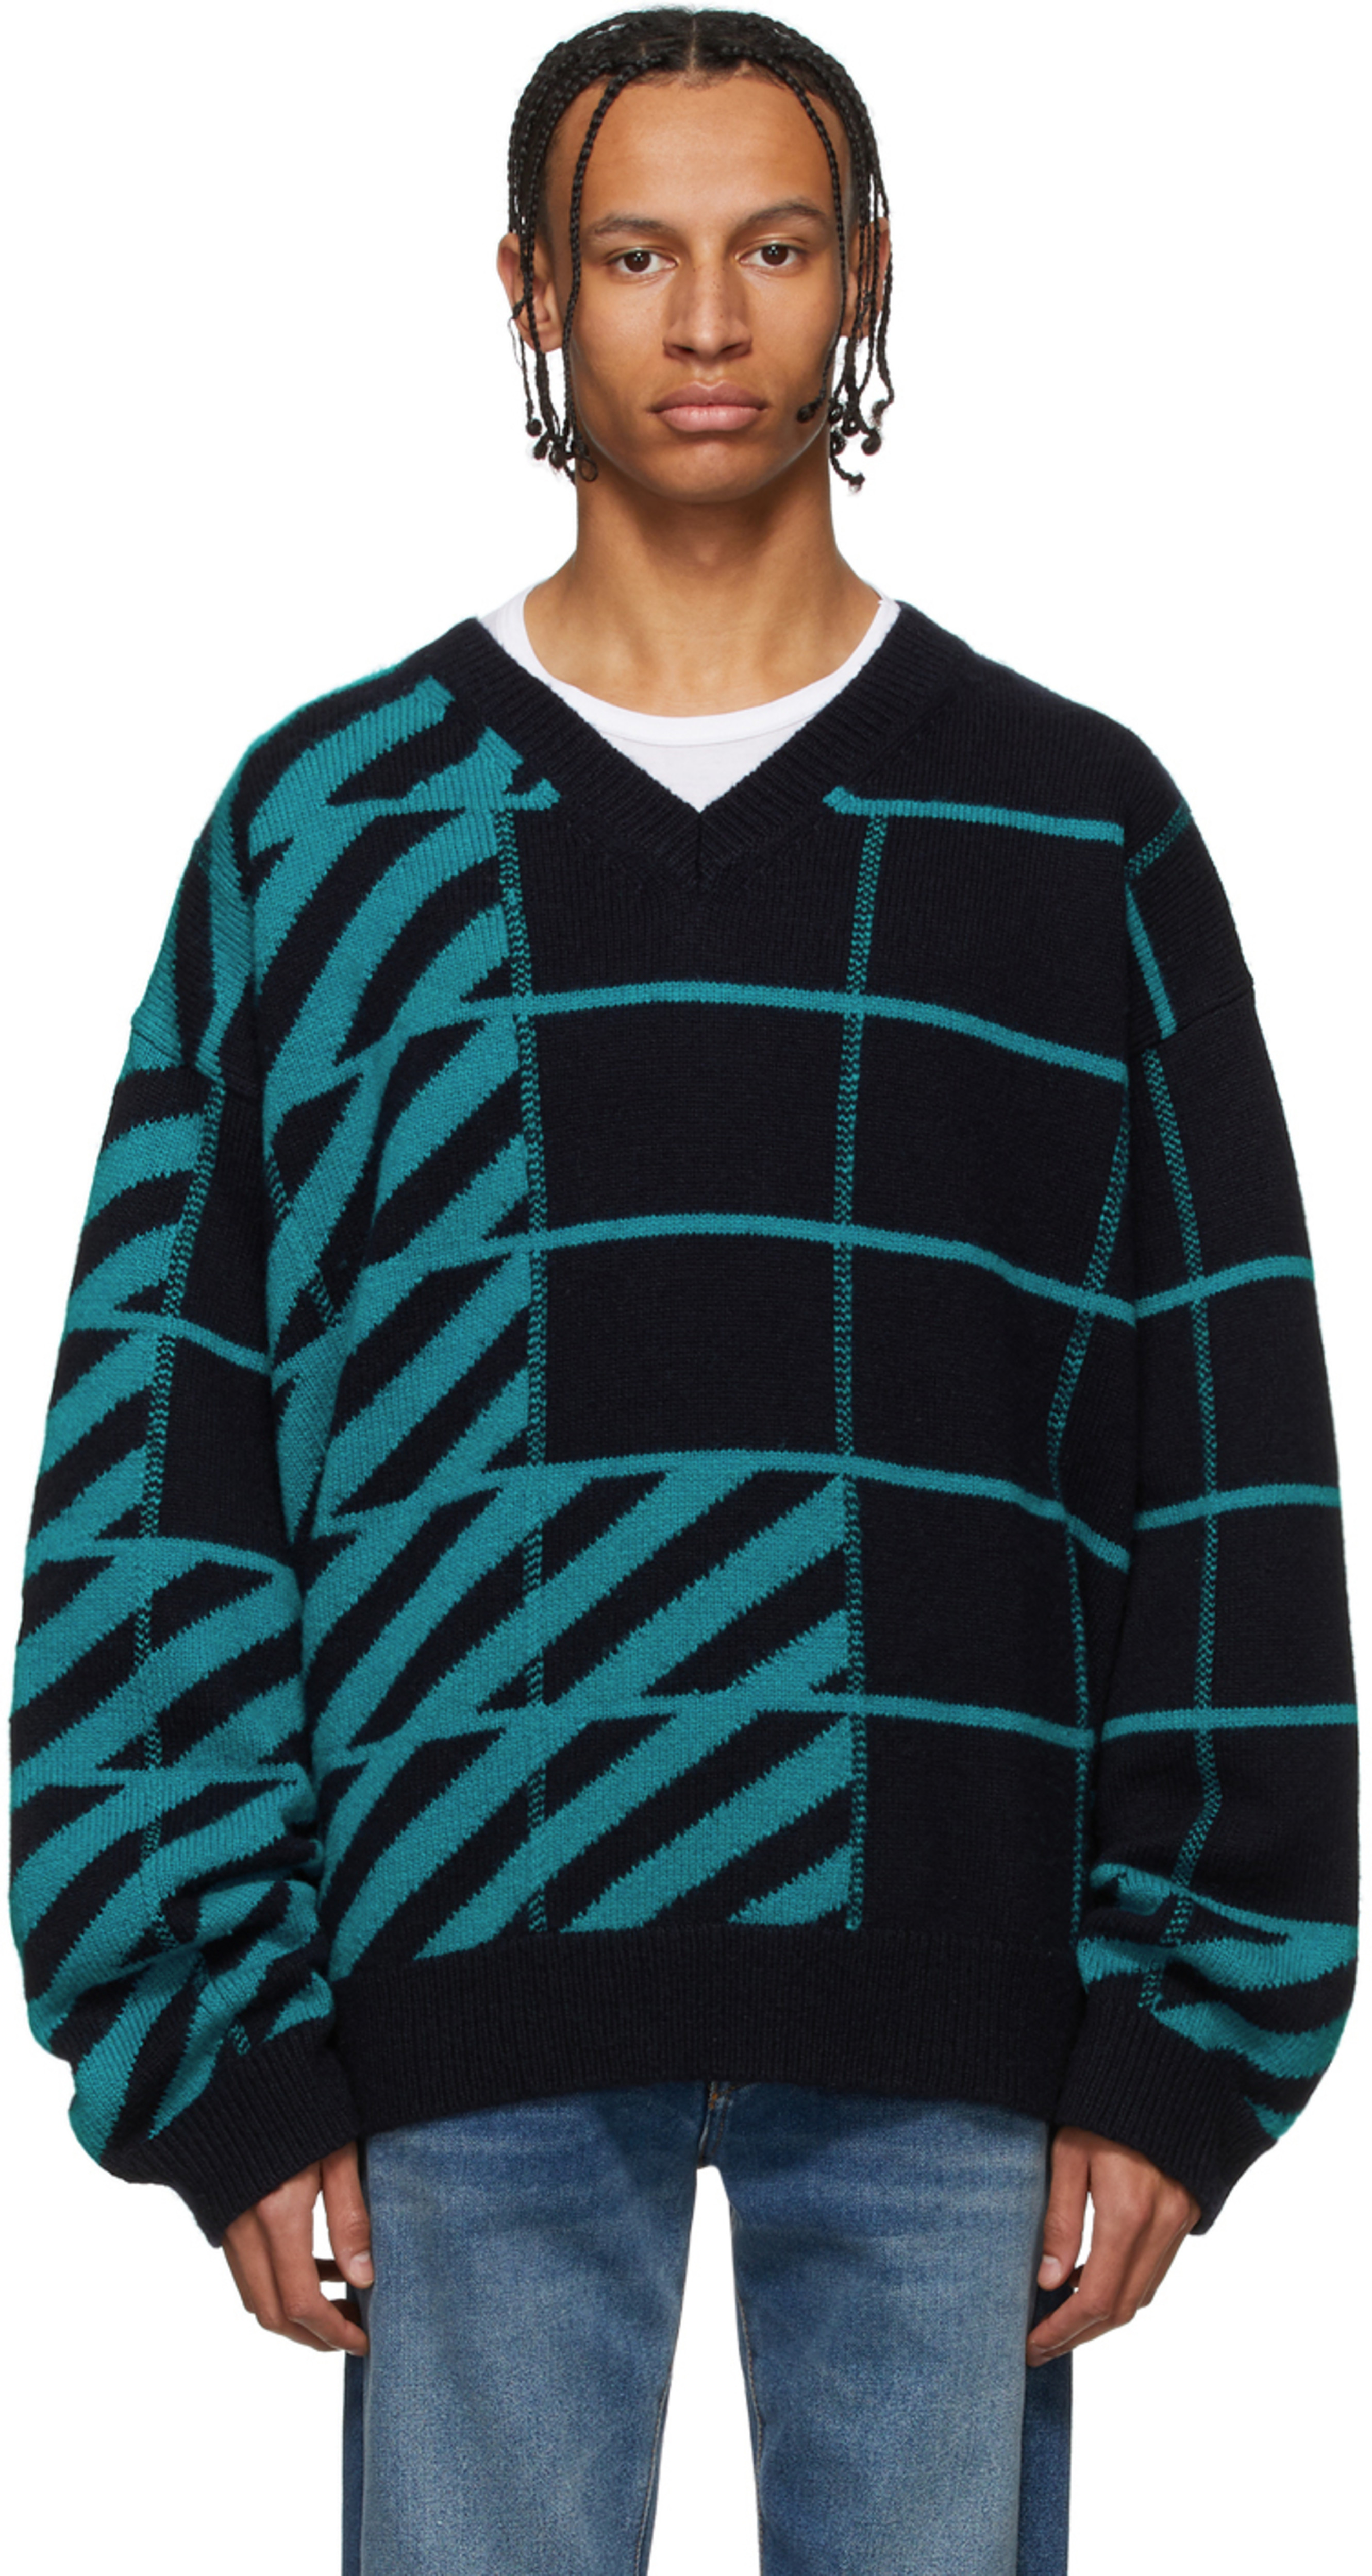 57801a96a4 Navy & Blue Diag Panel Sweater